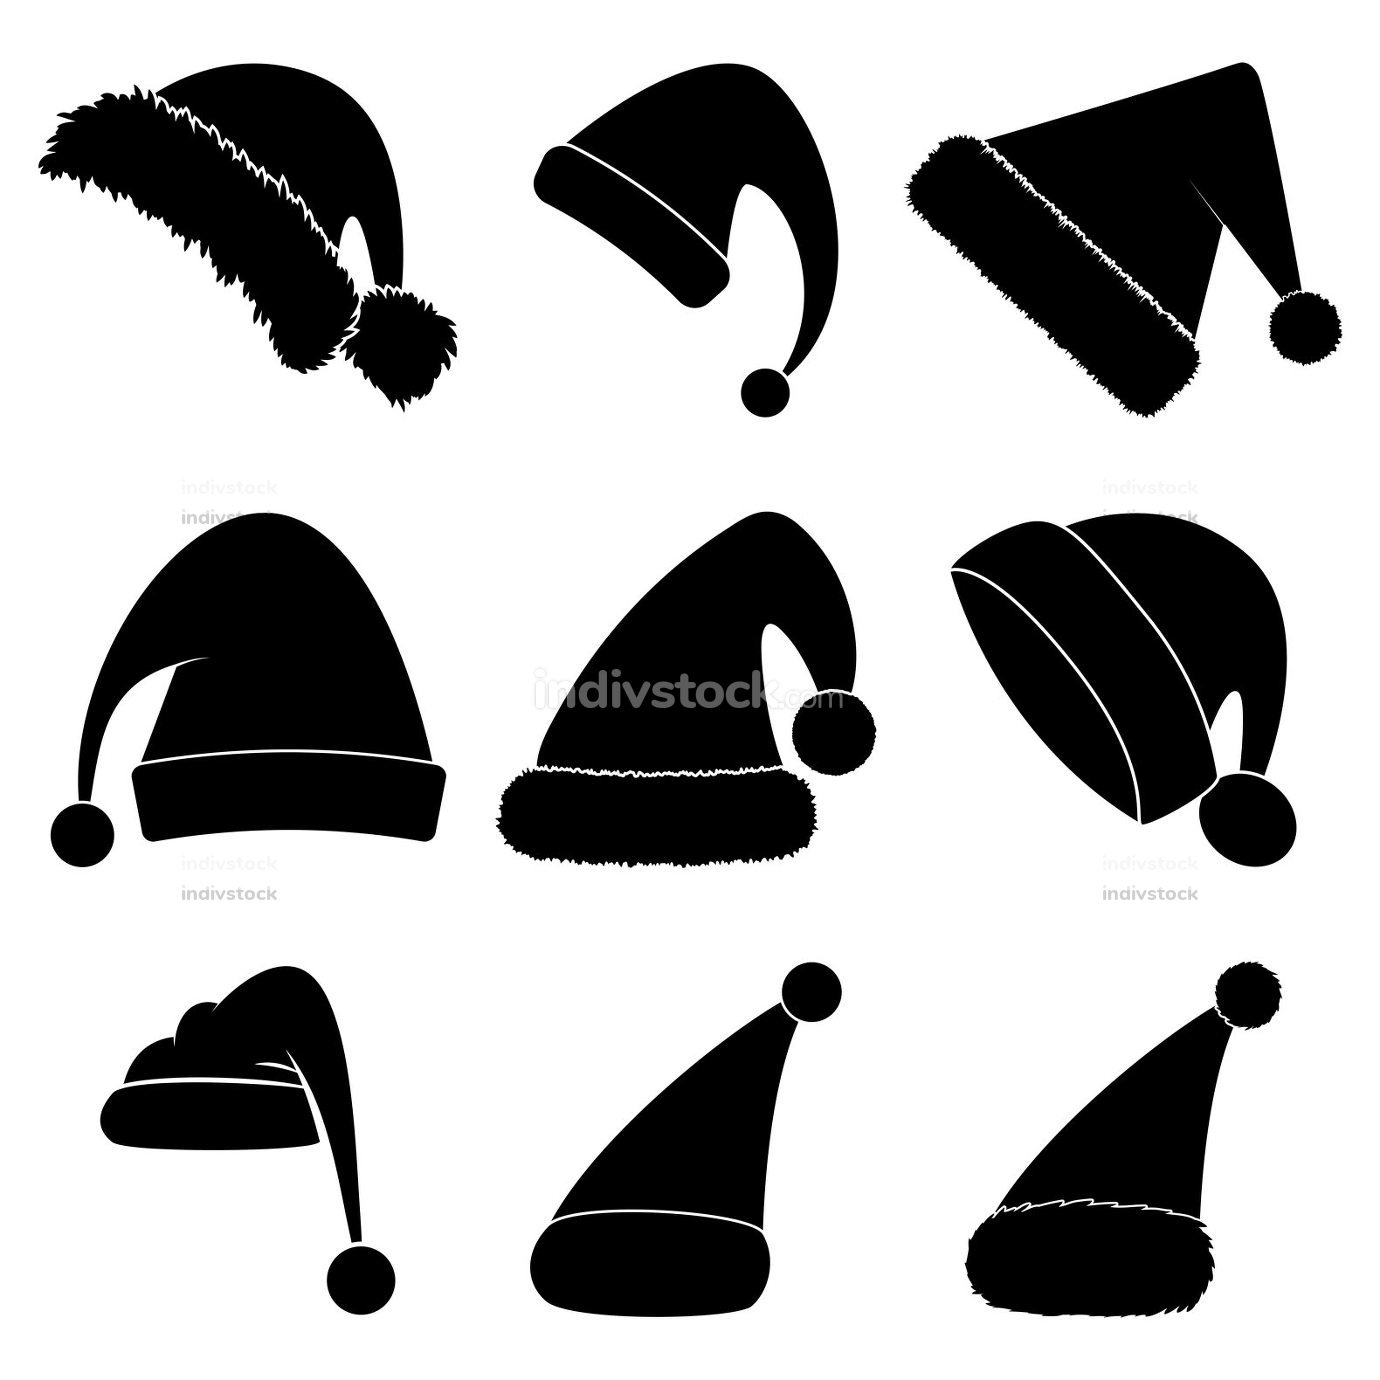 Christmas hat silhouette set. Black shape collection of santa claus hat. Santa cap icon group isolated on white background. Vector drawing for december holiday design. Winter simple symbols.